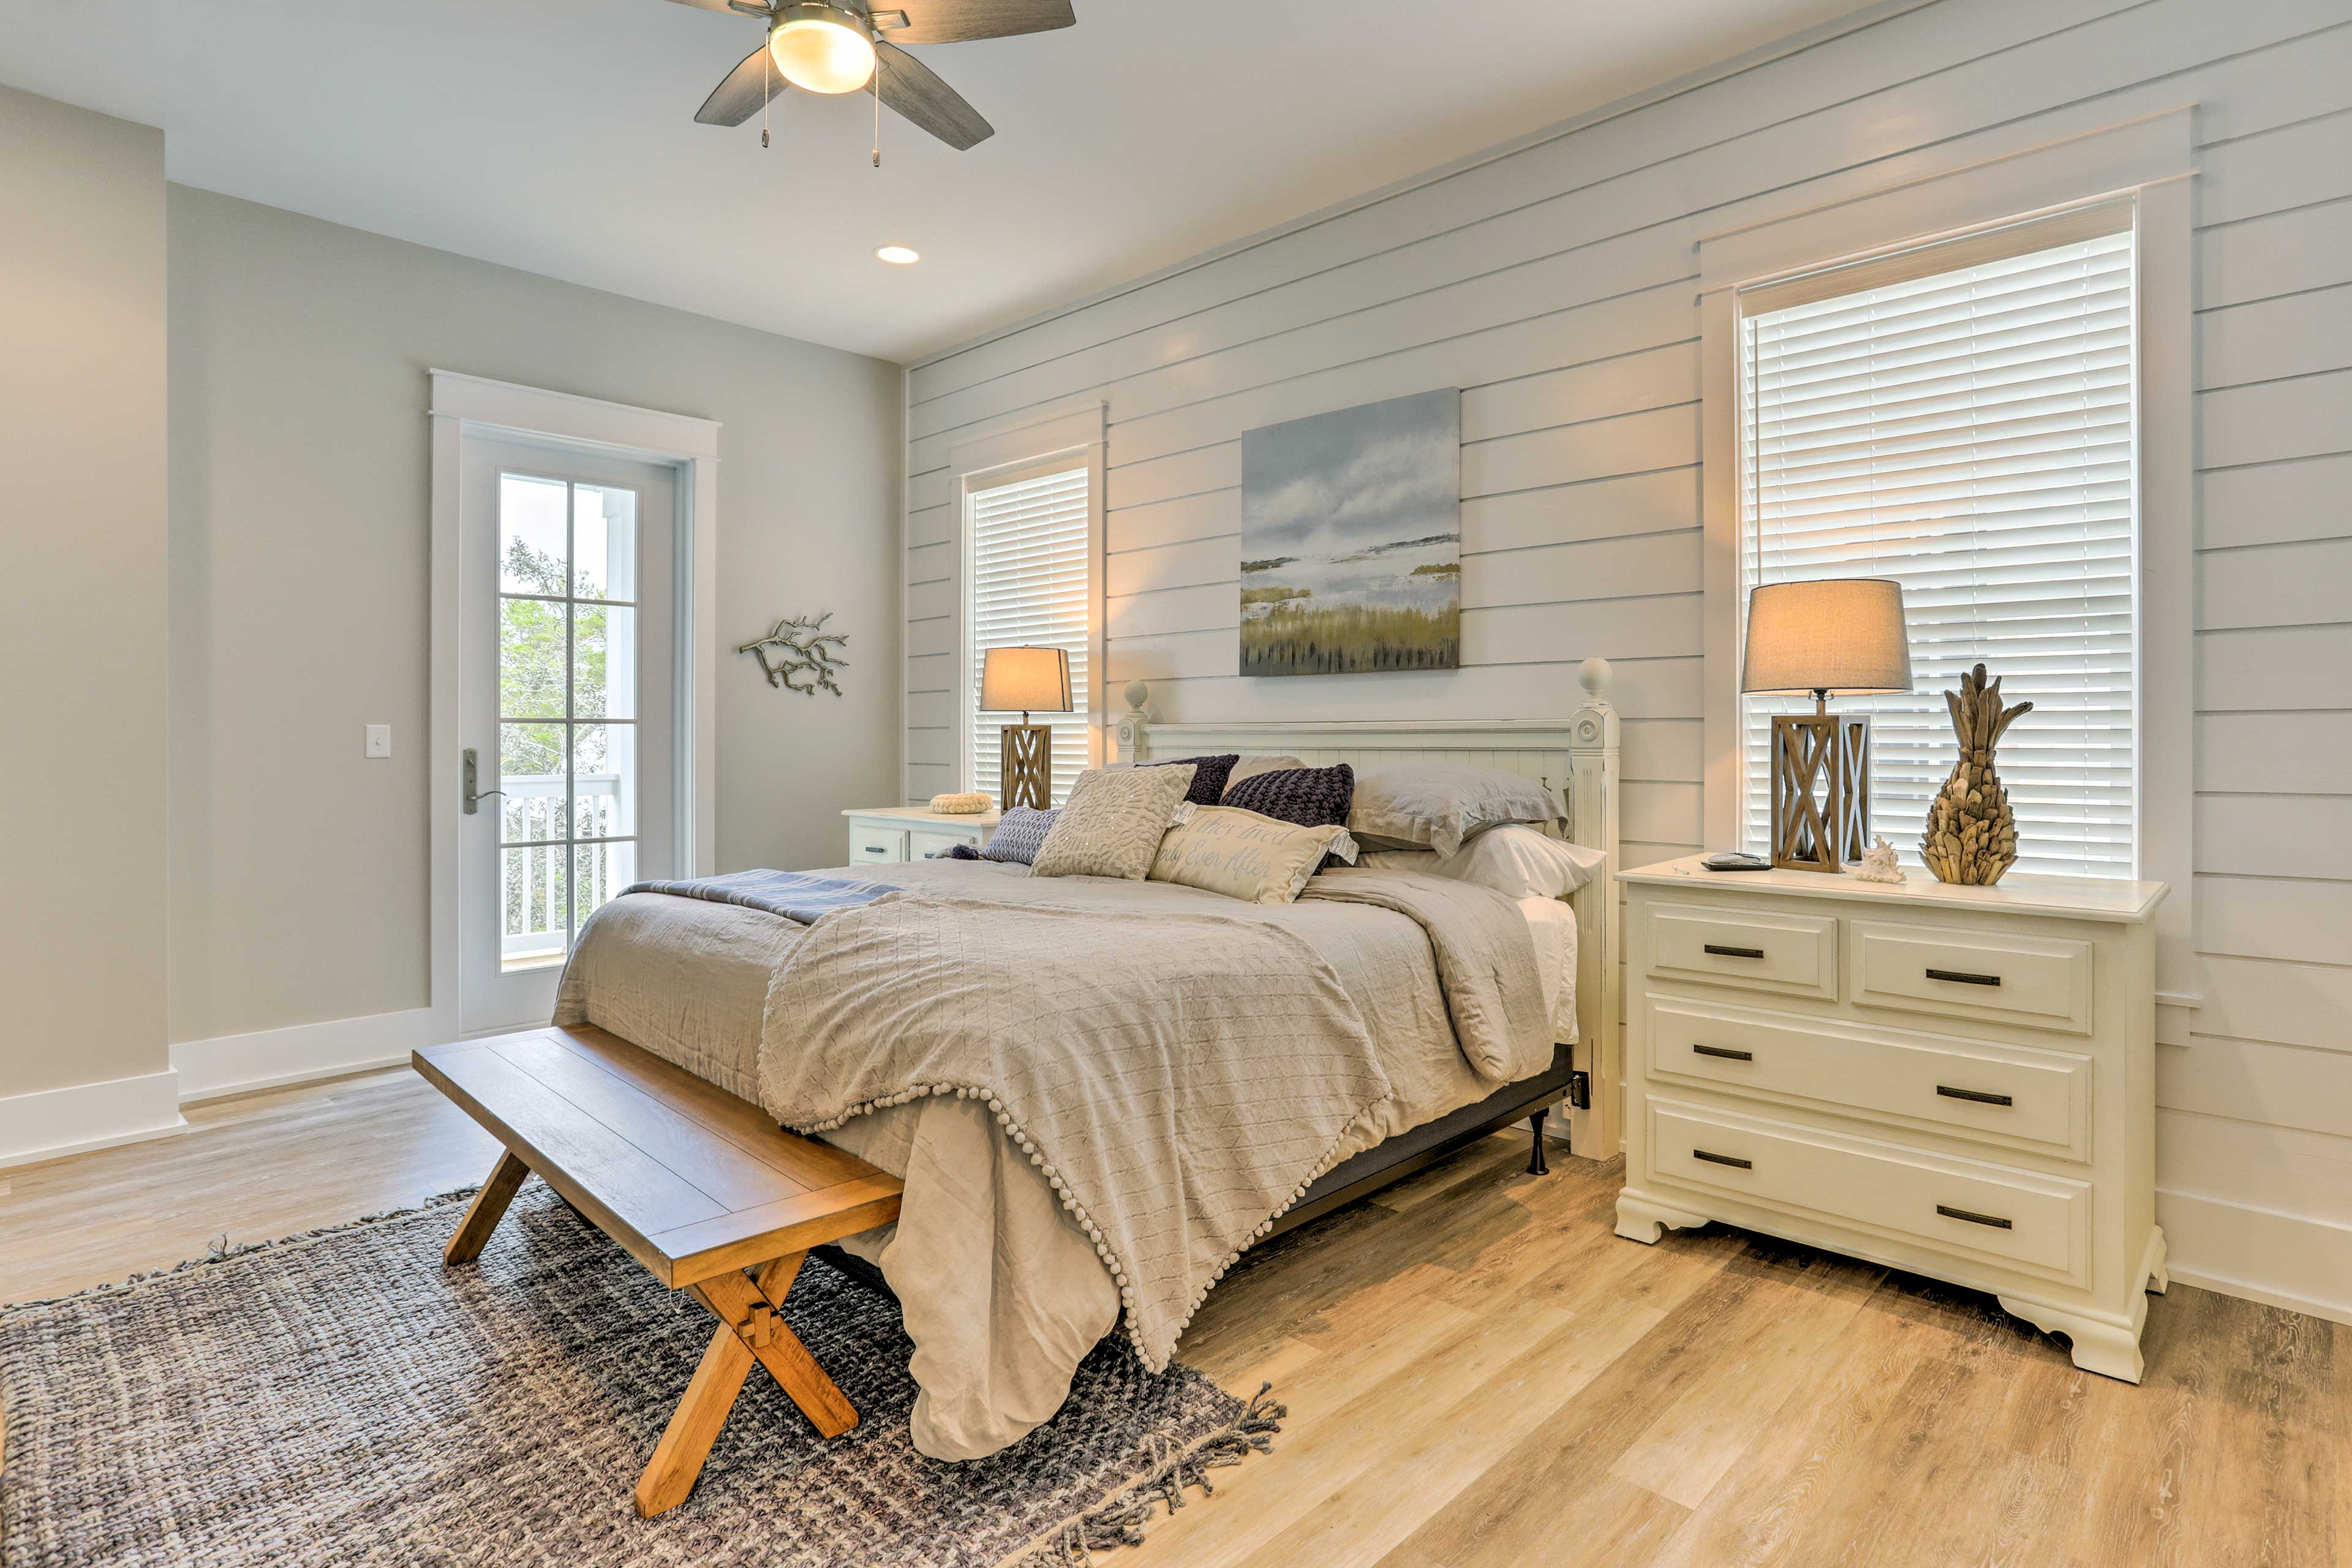 The first master bedroom boasts a plush king bed.